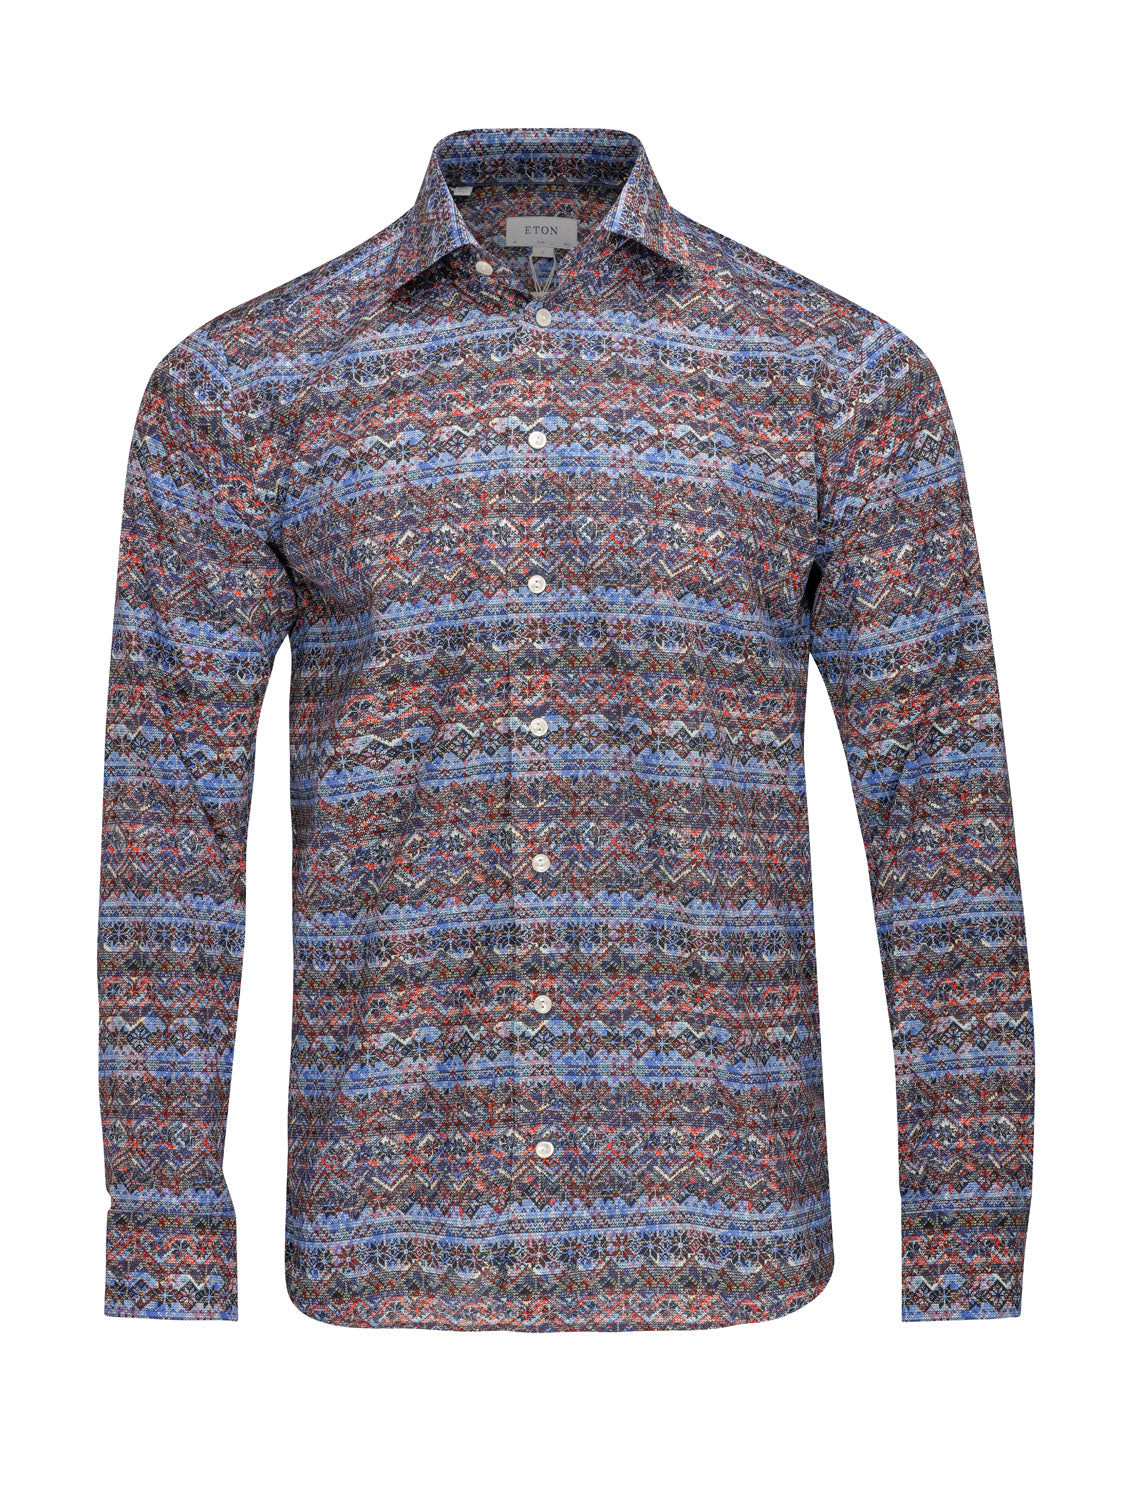 ETON Slim Fit Fair Isle Print Pointed Collar Shirt - Union 22